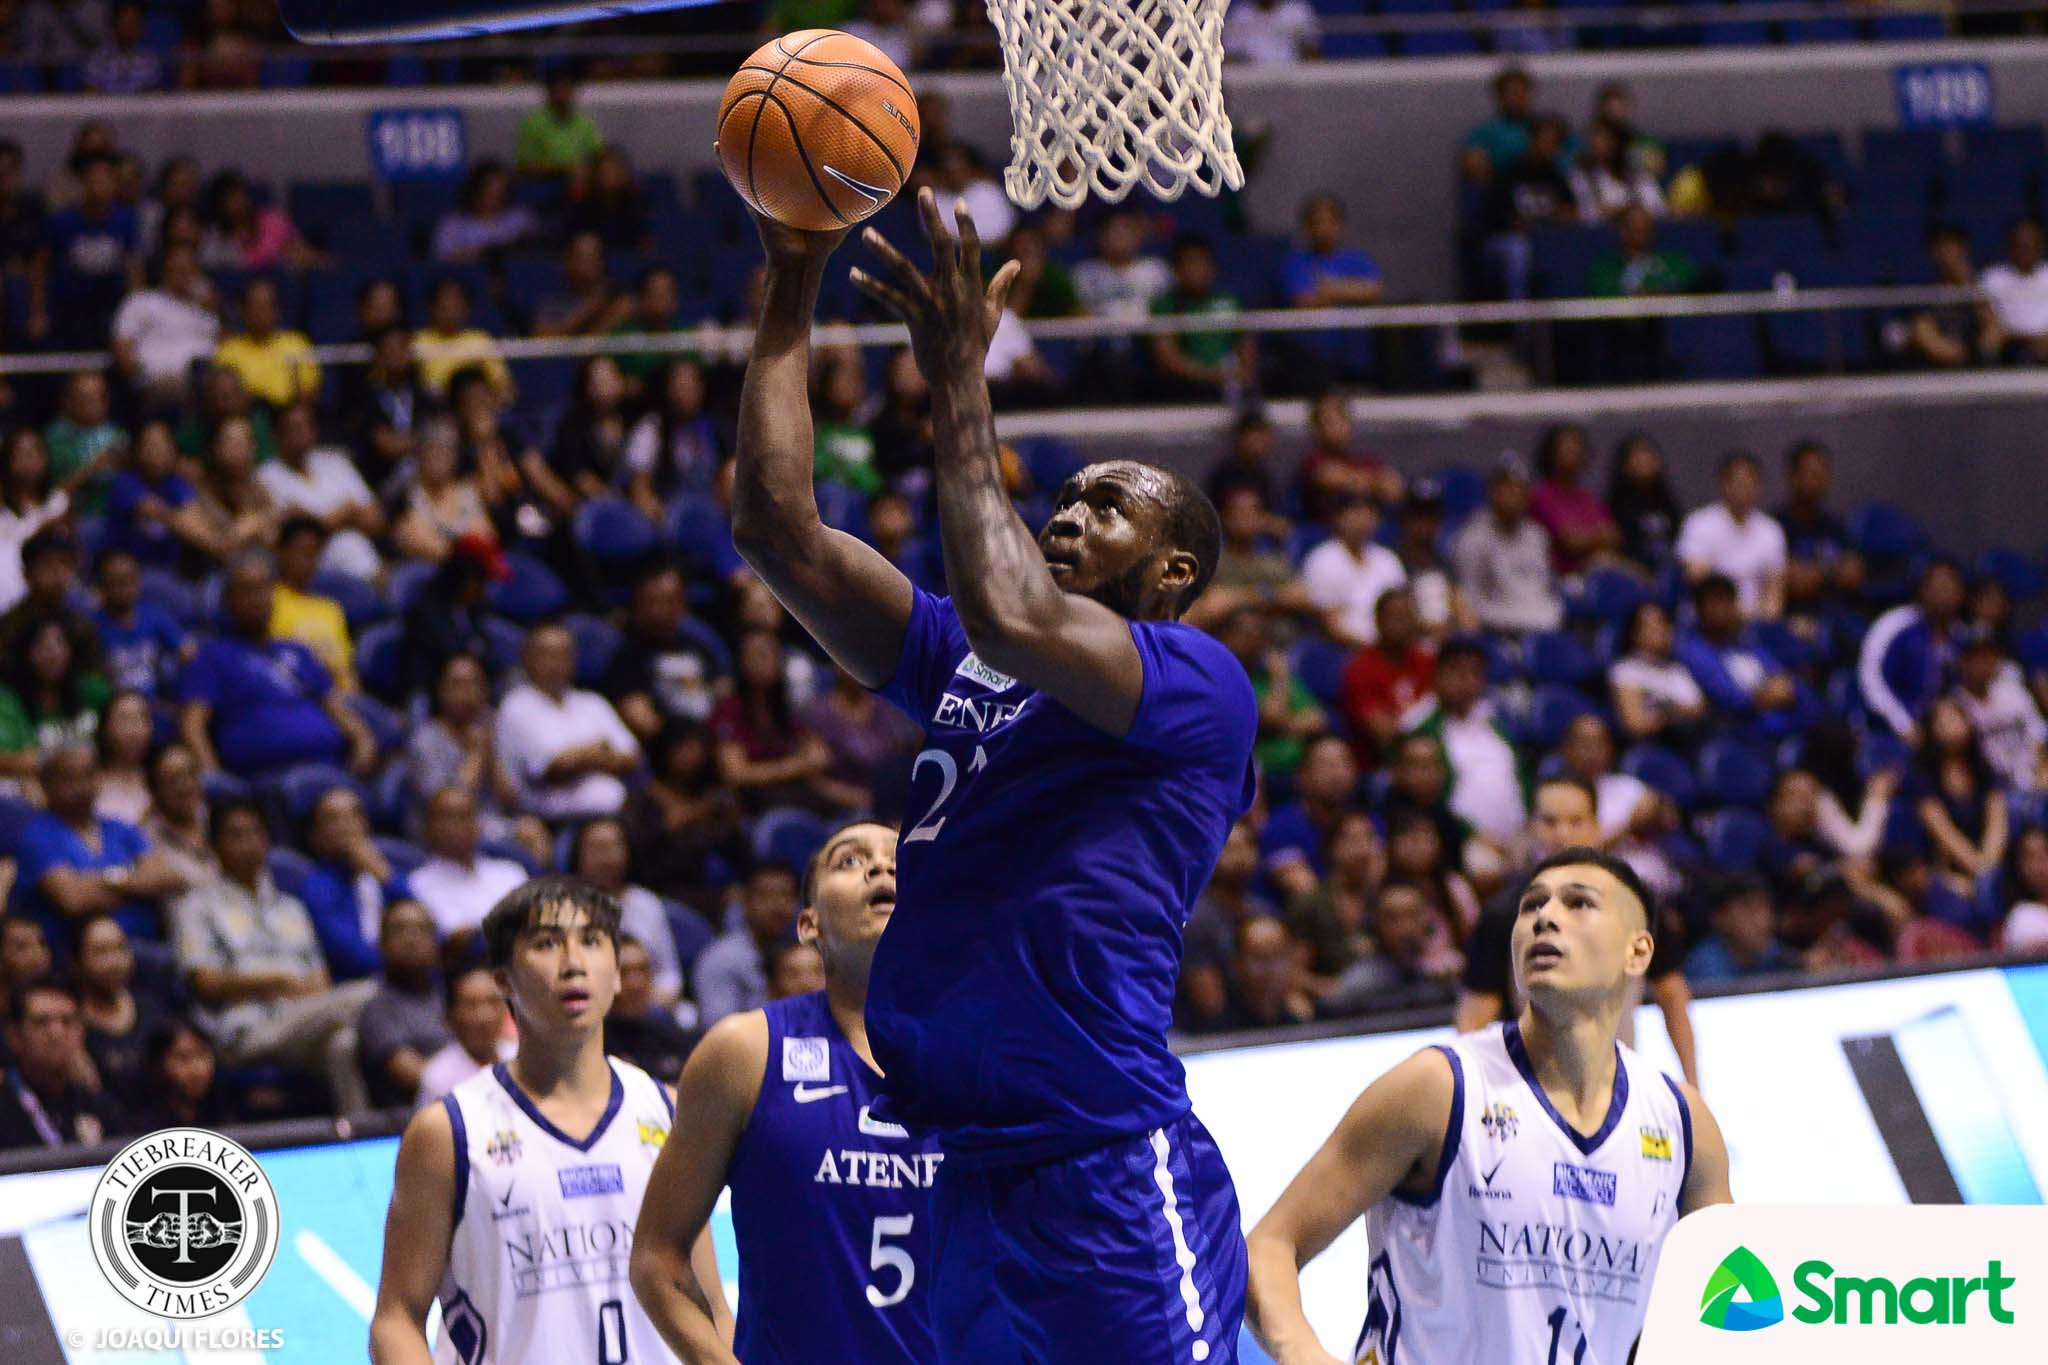 Tiebreaker Times Chibueze Ikeh becomes Ateneo's second SMART/Chooks Player of the Week ADMU Basketball News UAAP  UAAP Season 80 Men's Basketball UAAP Season 80 UAAP Player of the Week Ron Dennison Papi Sarr Chooks-to-Go Chibueze Ikeh Ateneo Men' Basketball Arvin Tolentino